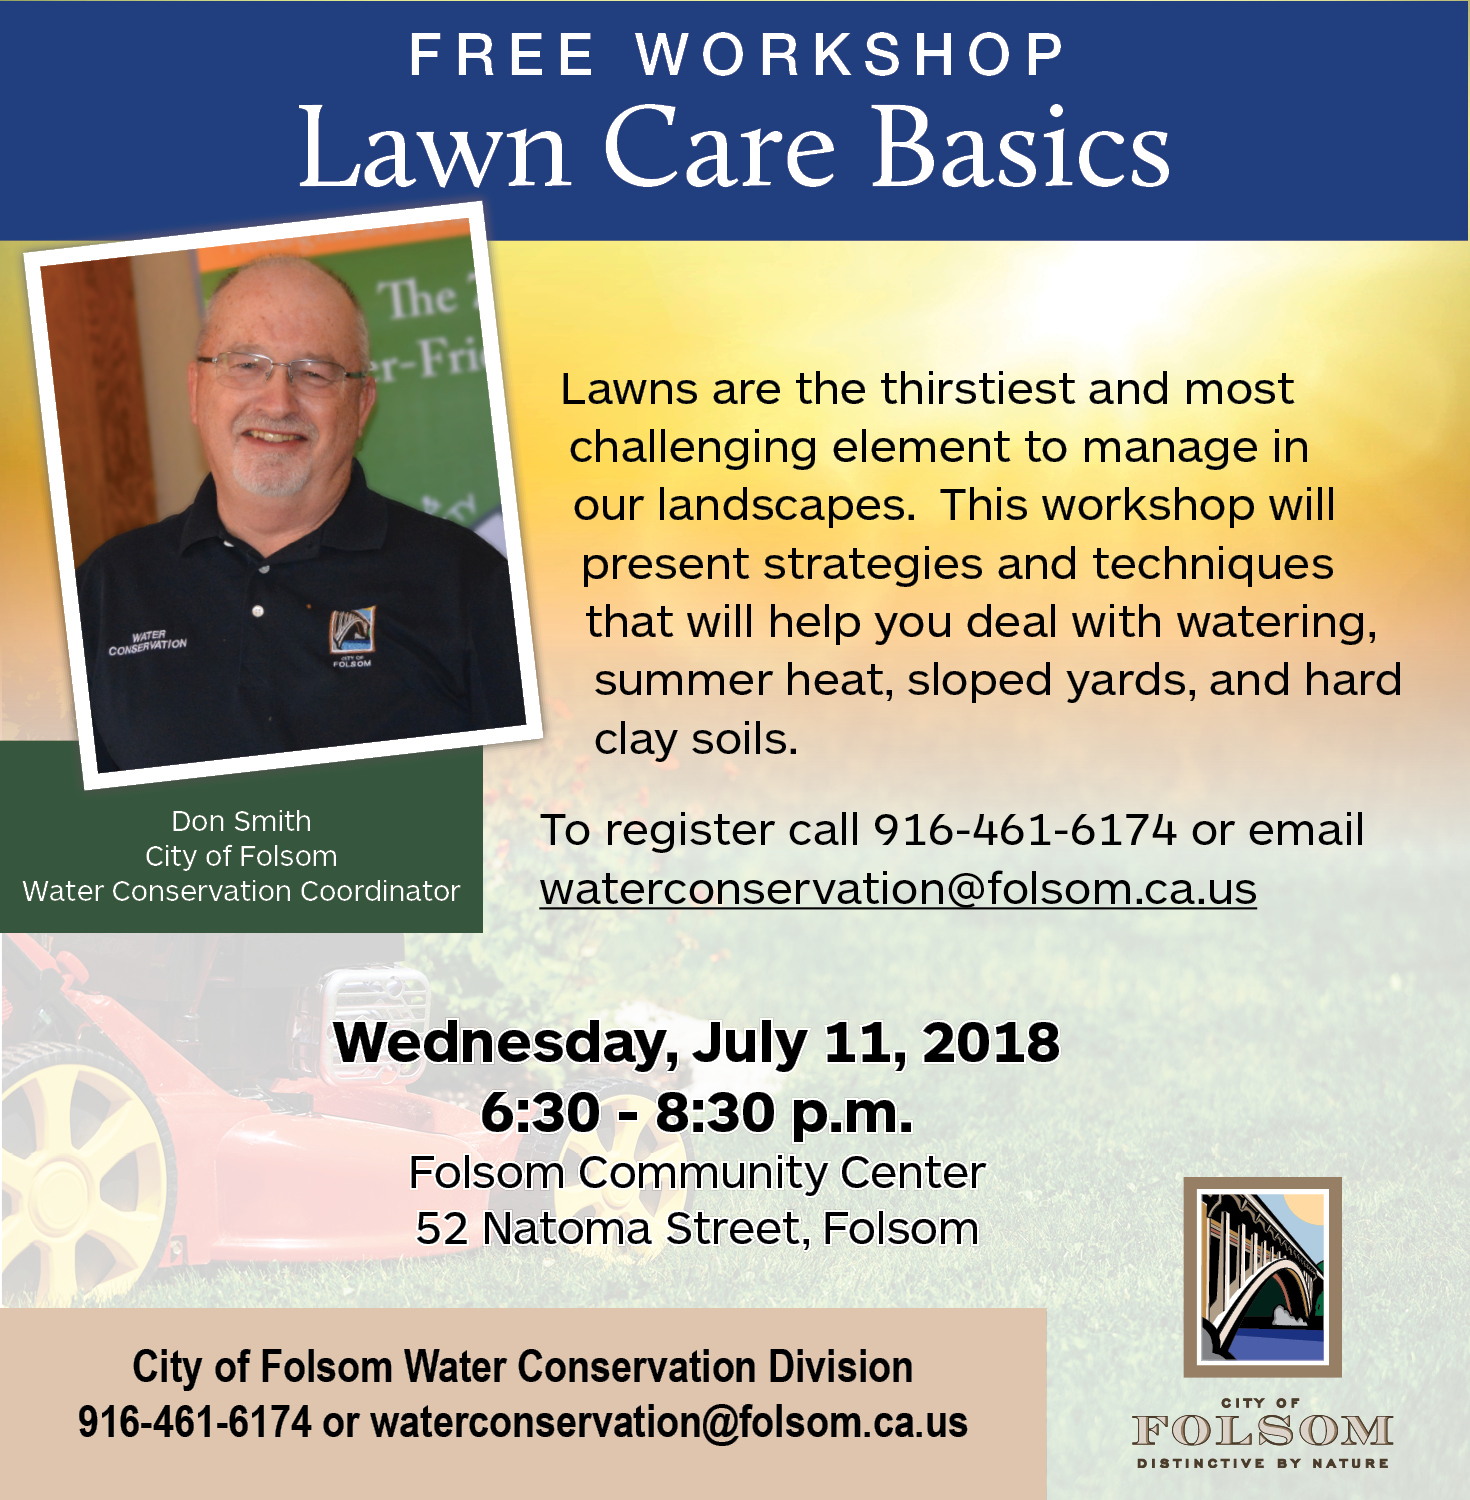 Lawncare 20june21tojuly5